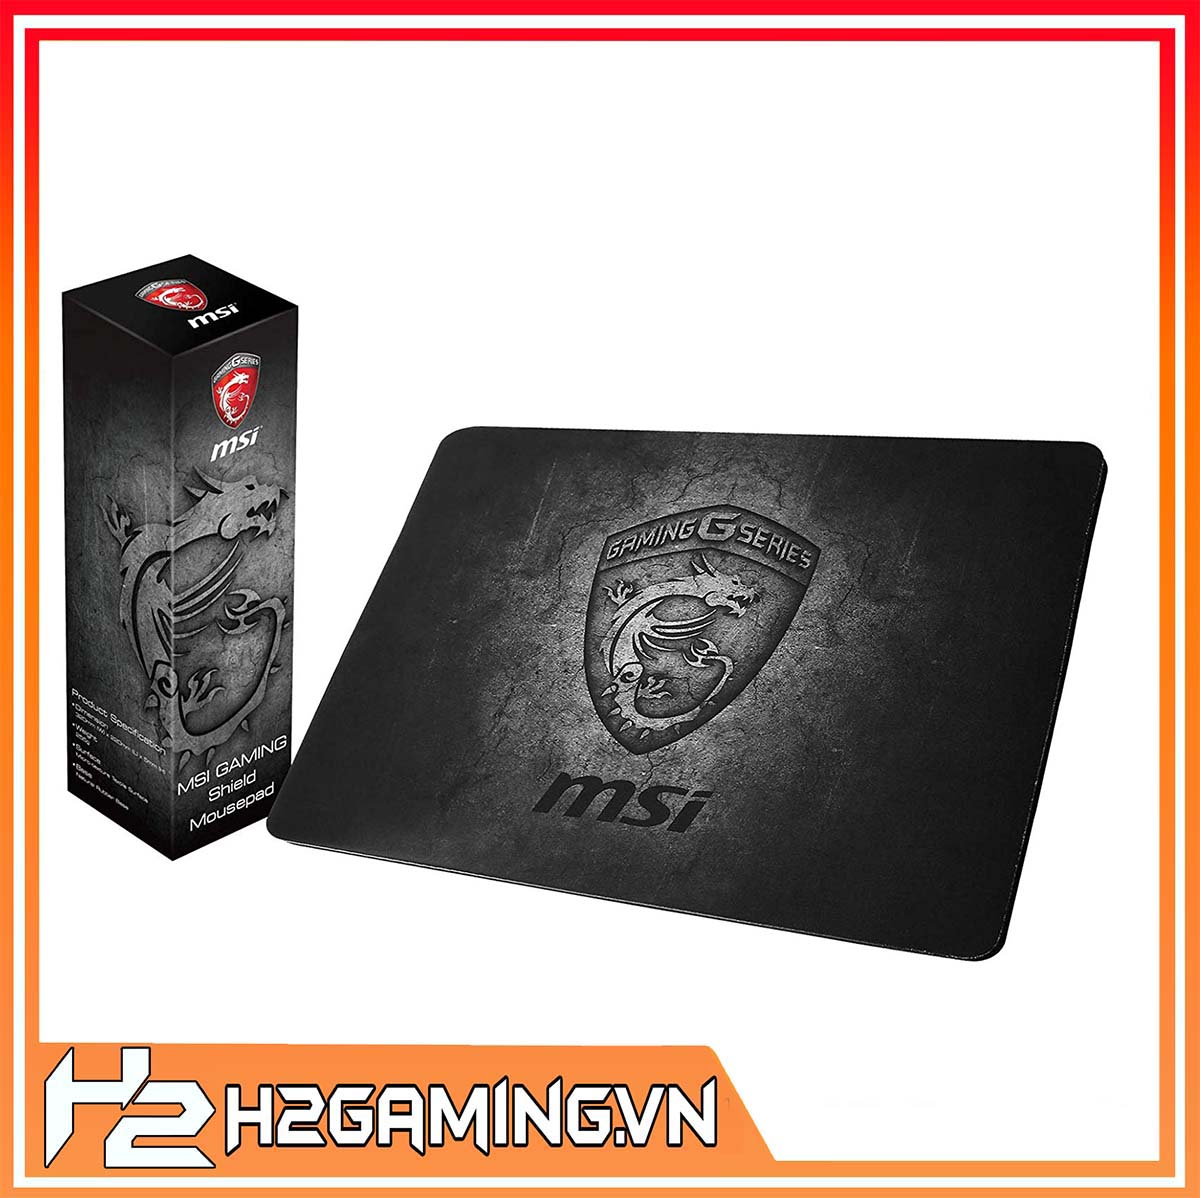 MSI_GAMING_SHIELD_MOUSEPAD